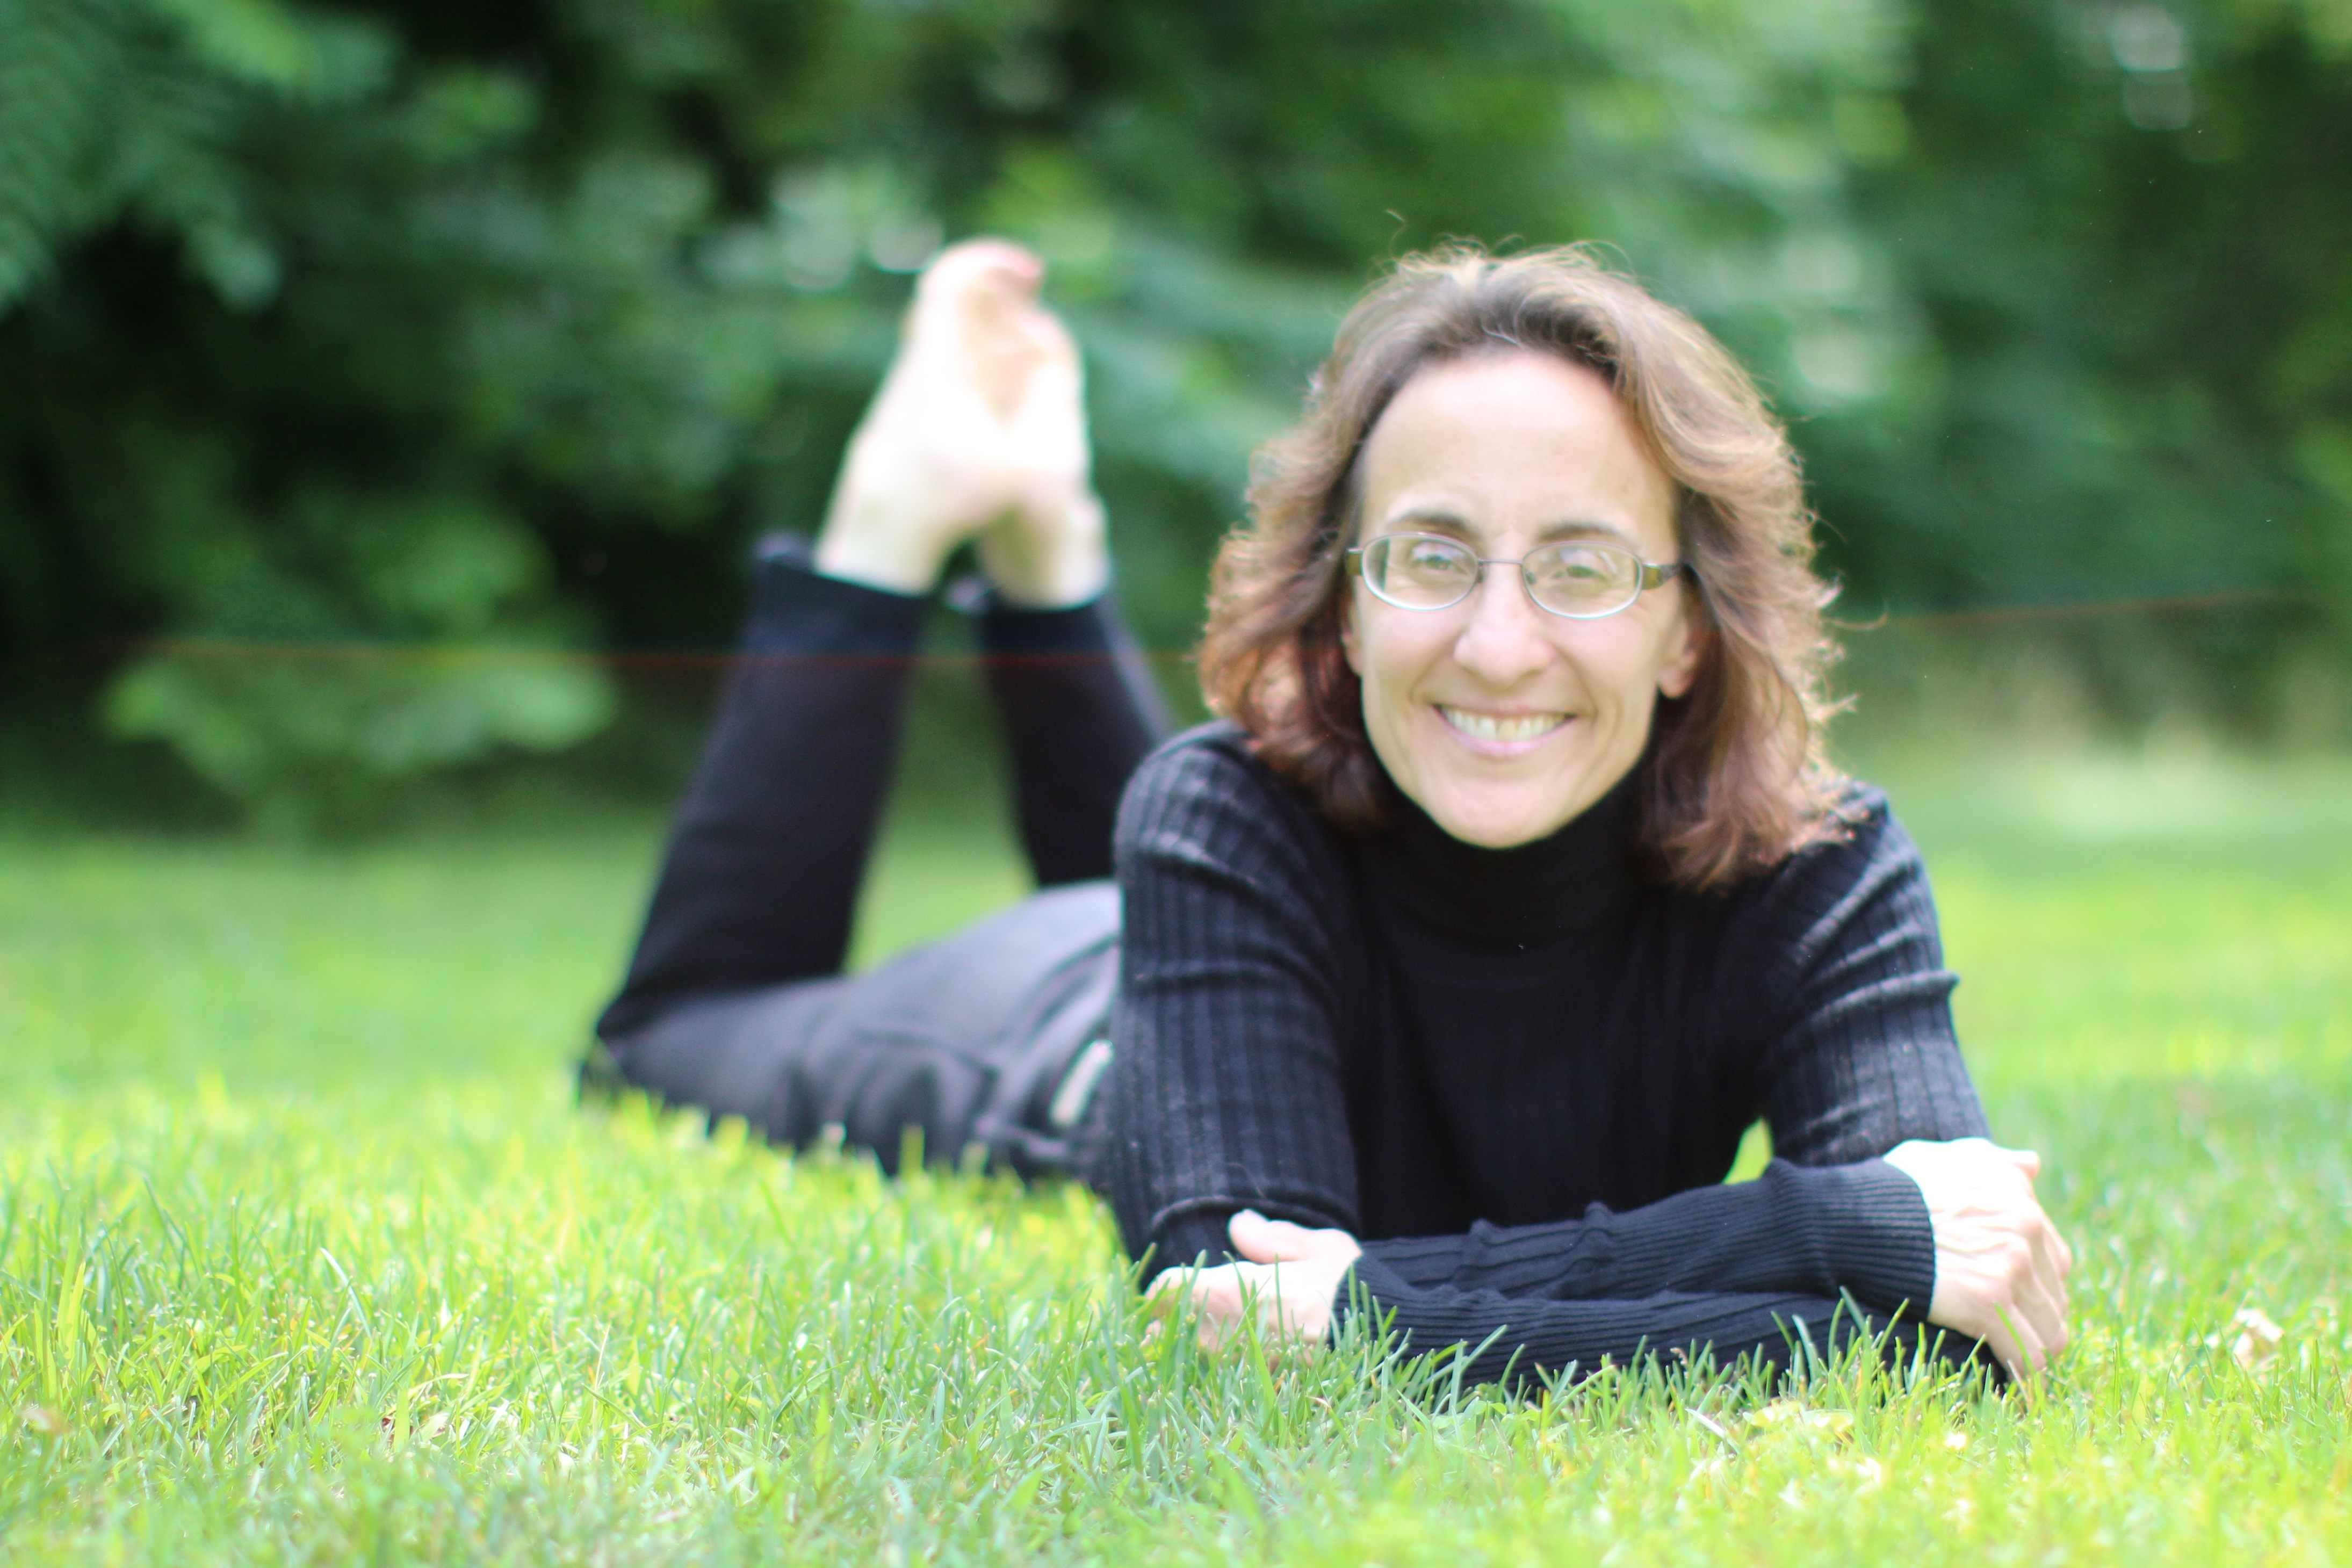 single lesbian women in ann arbor Gay and lesbian spiritual and family life in ann arbor ~ a look at  page 45  an interview with debbie zivan on being a lesbian single mom  empowers  women to create natural birth experiences within a hospital.